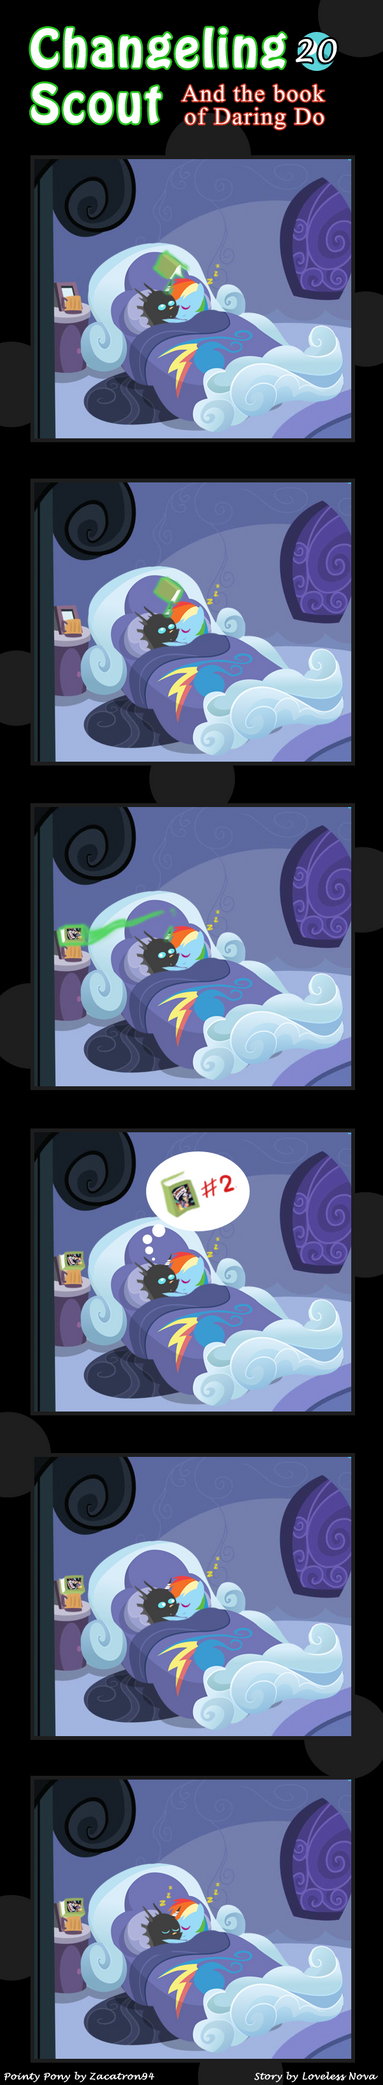 Changeling Scout And The Book Of Daring Do 20 by vavacung